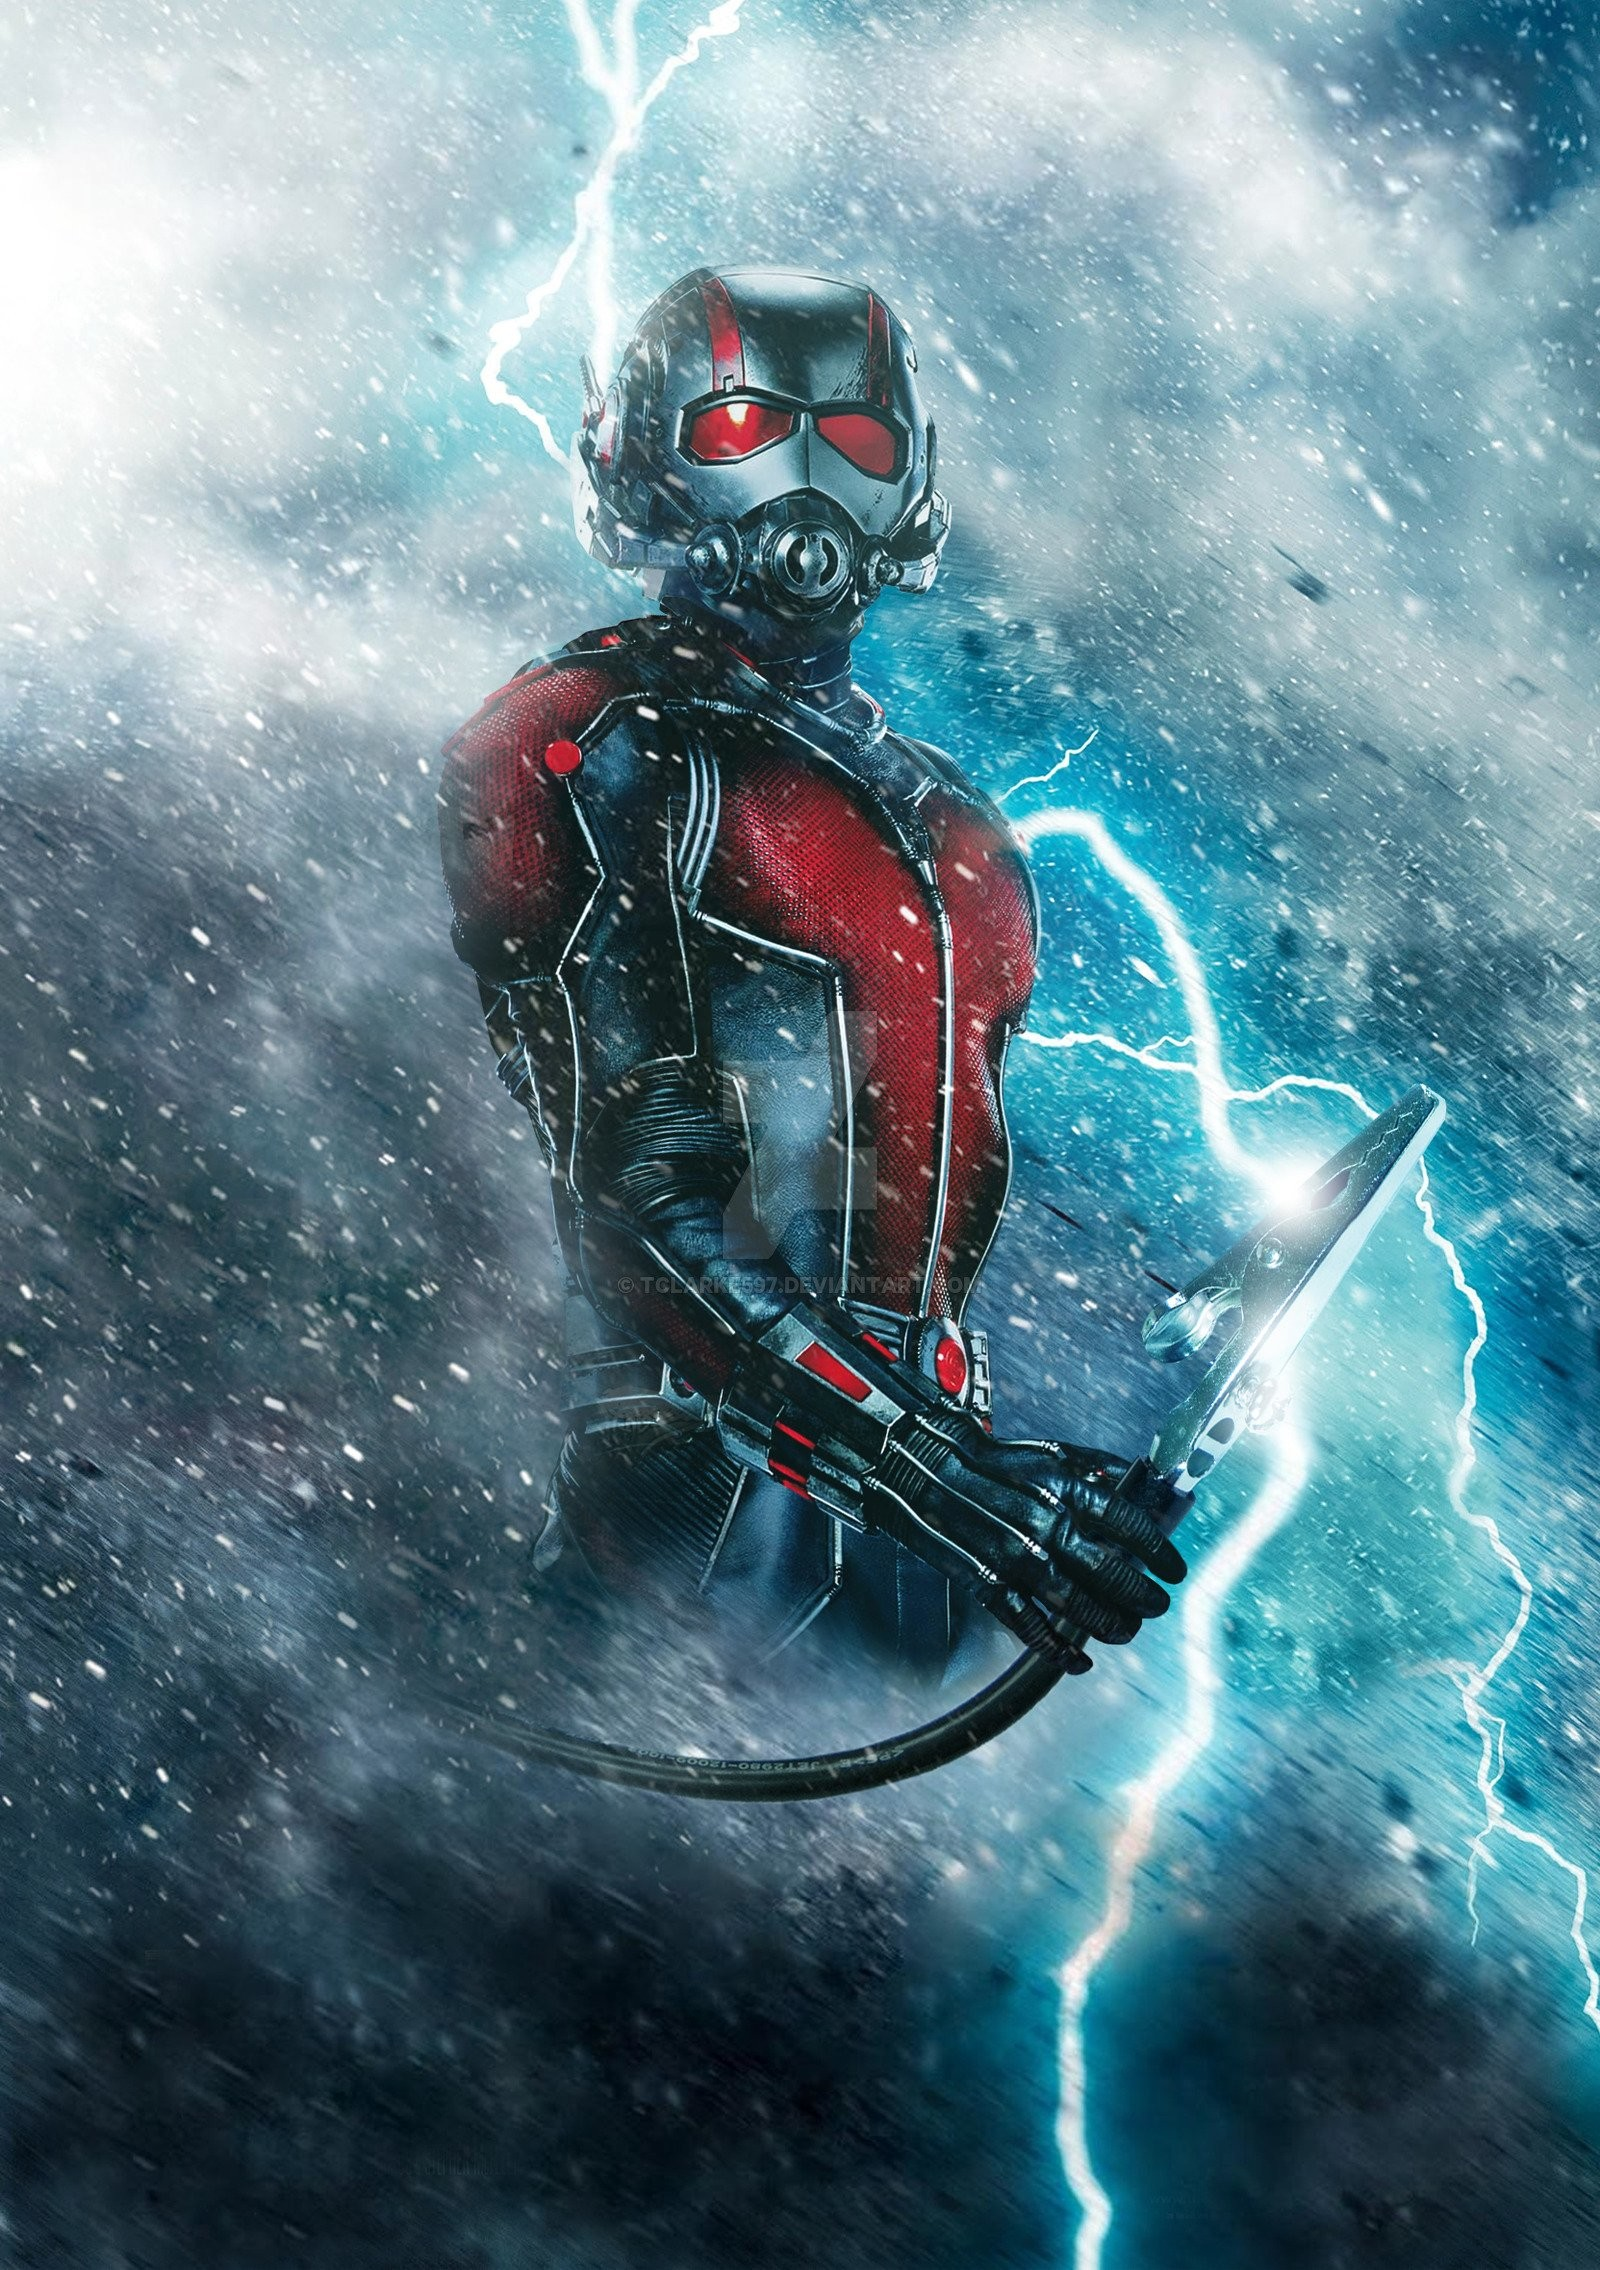 Ant man wallpaper hd 72 images - Superhero iphone wallpaper hd ...